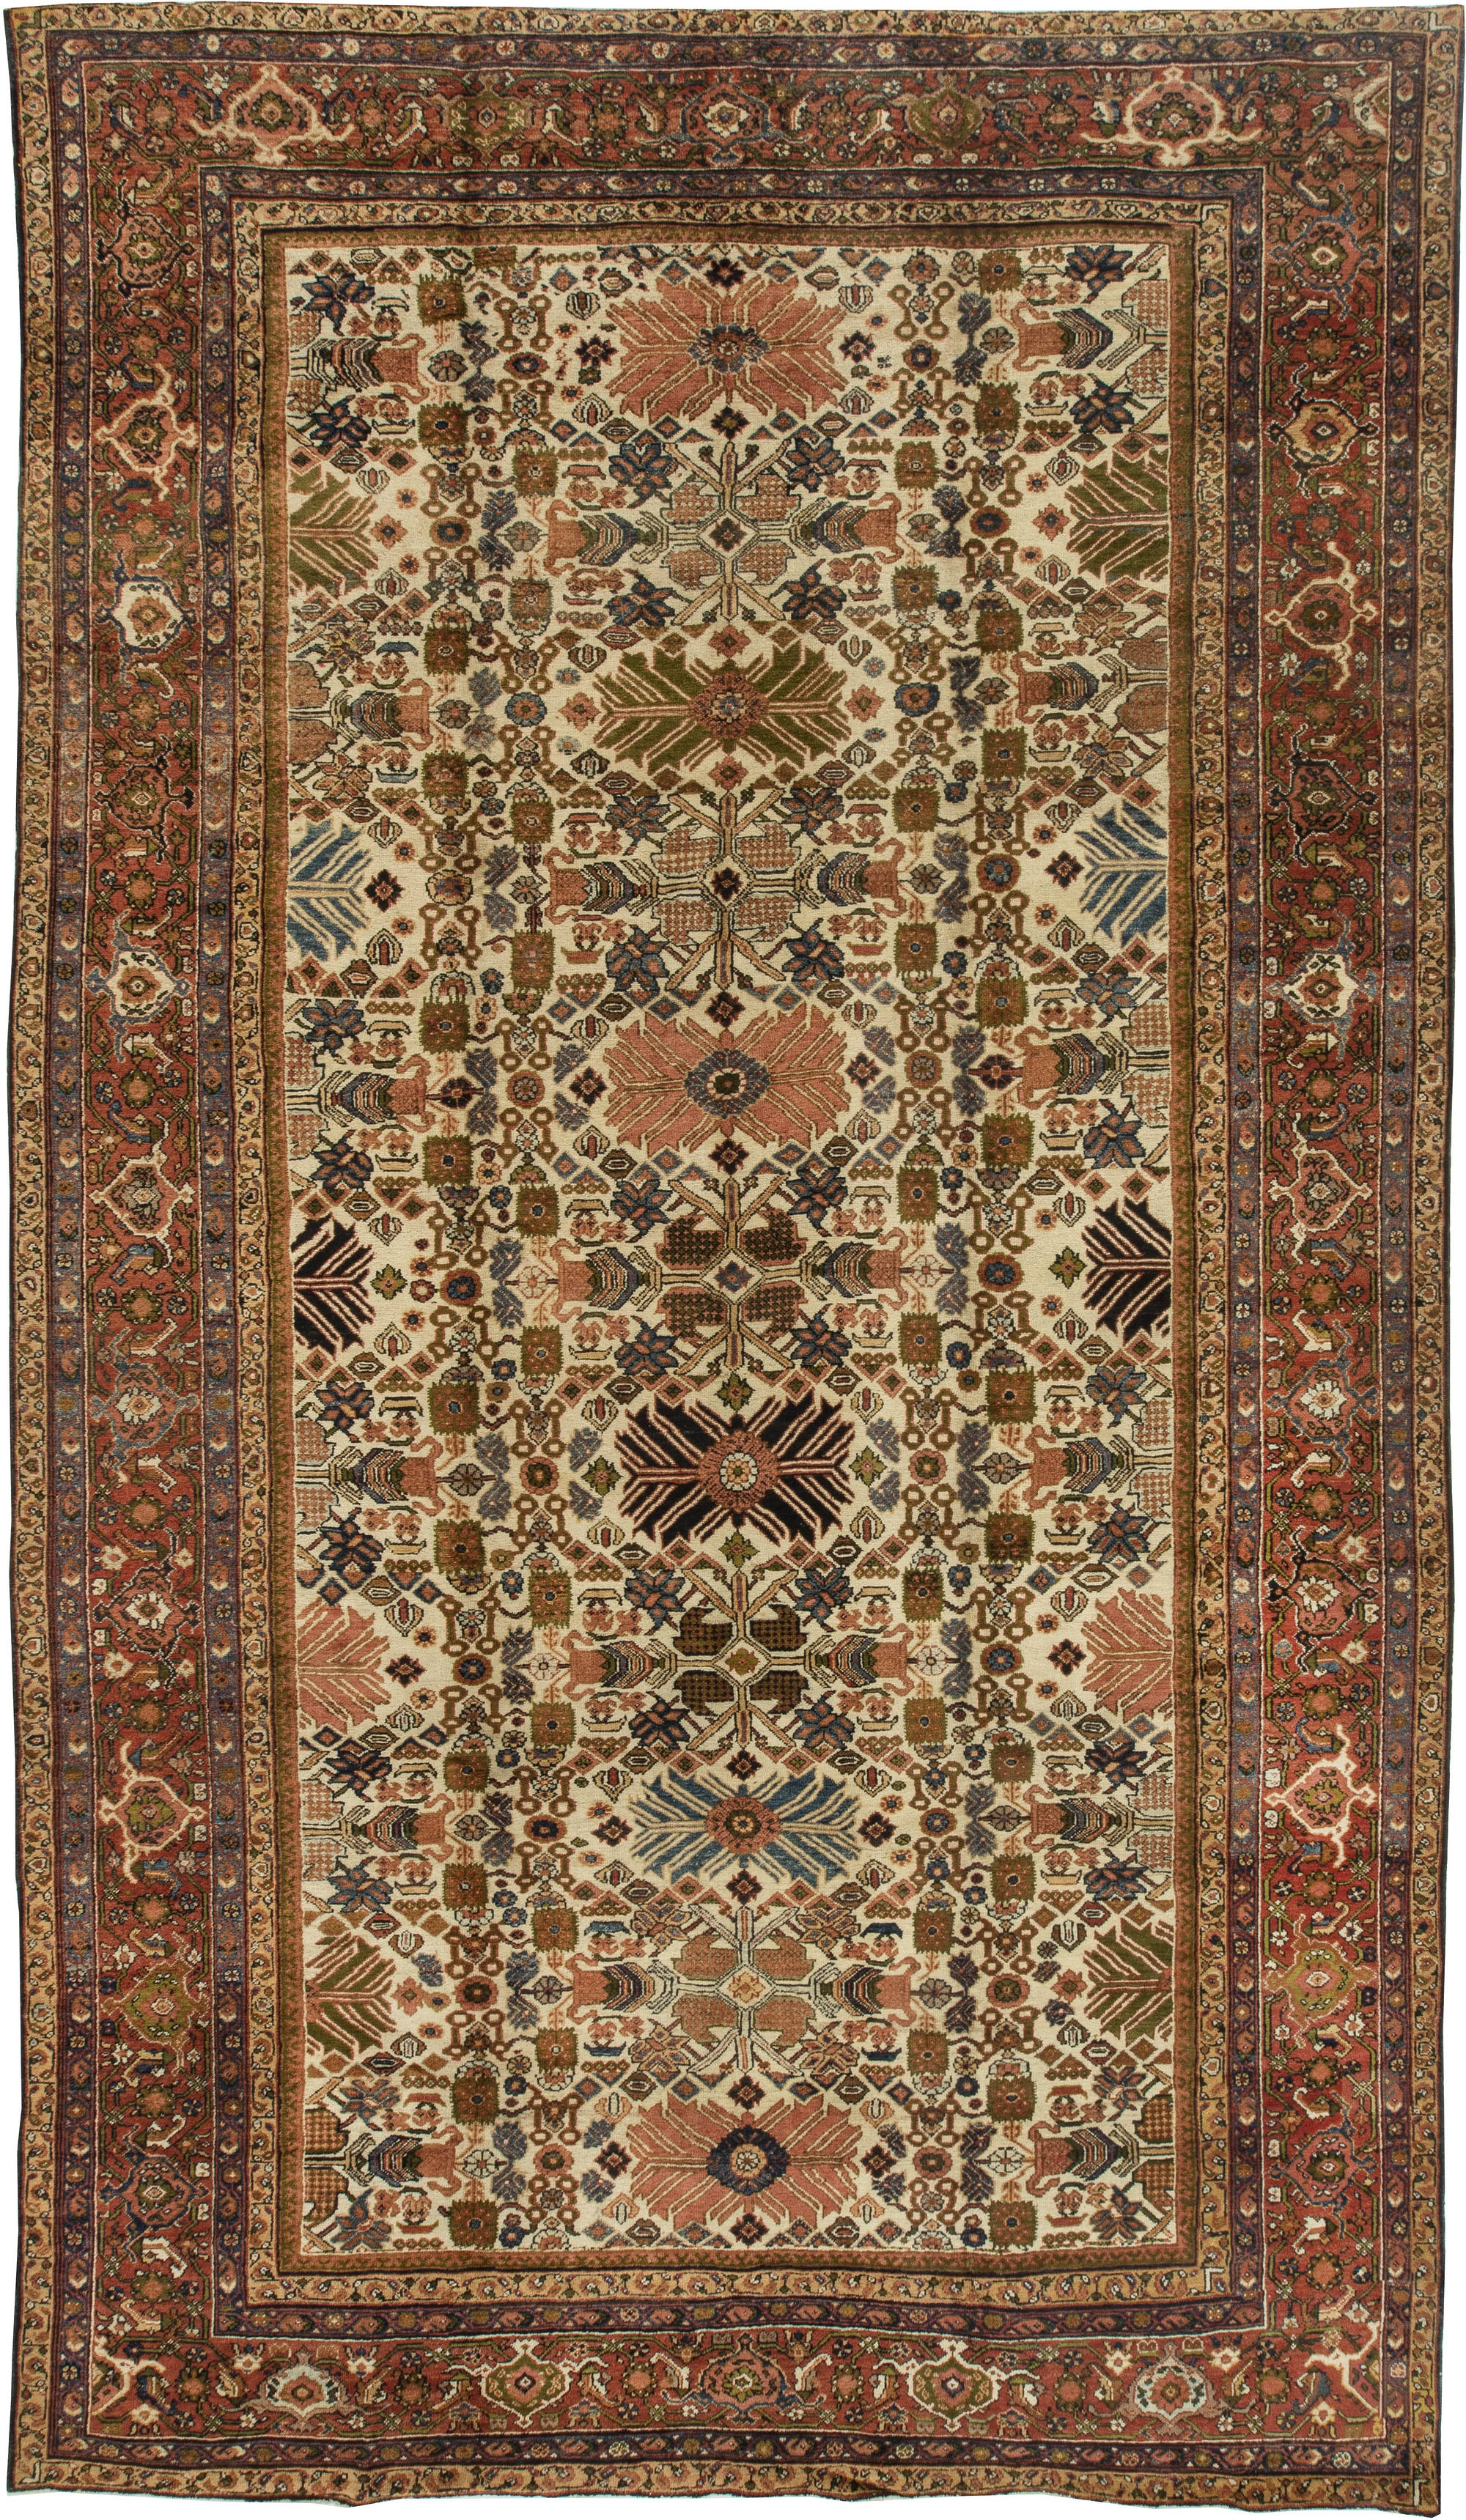 Antique Persian Rugs And Antique Oriental Rugs For Carpet Rugs (Image 2 of 15)